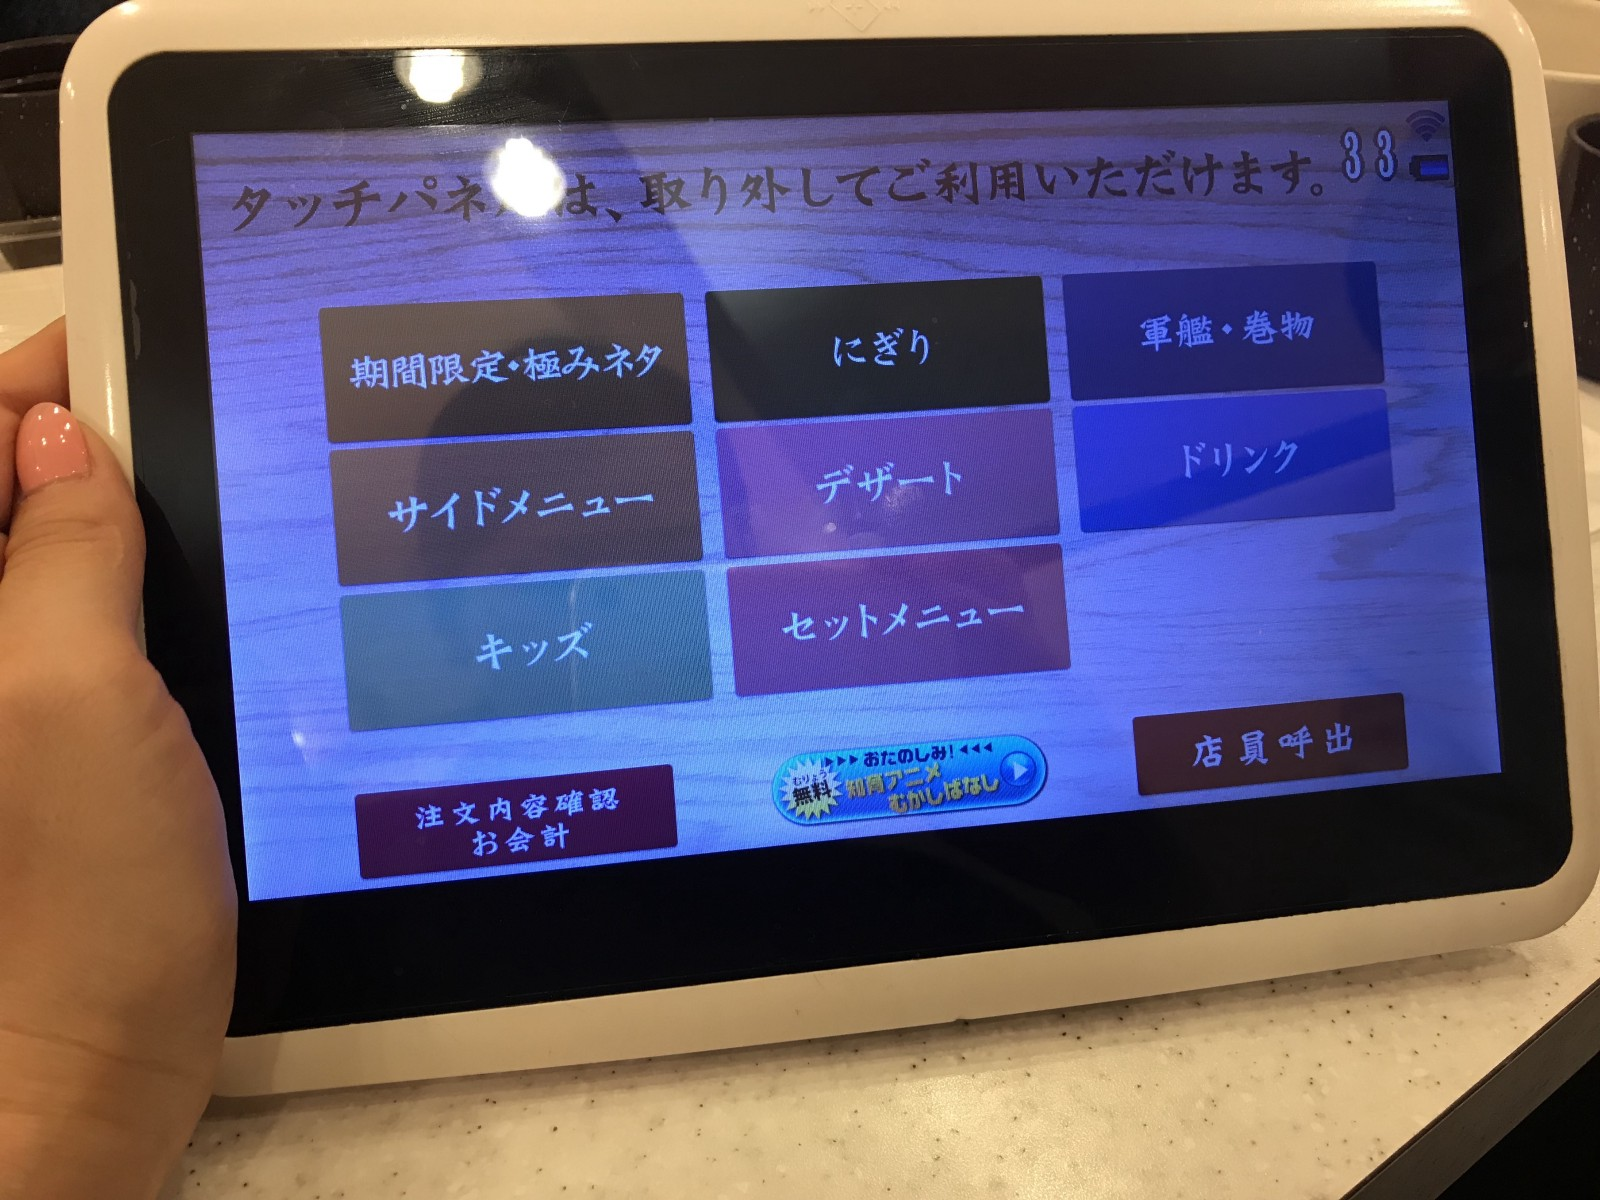 The tablet ordering system at Kappa Sushi